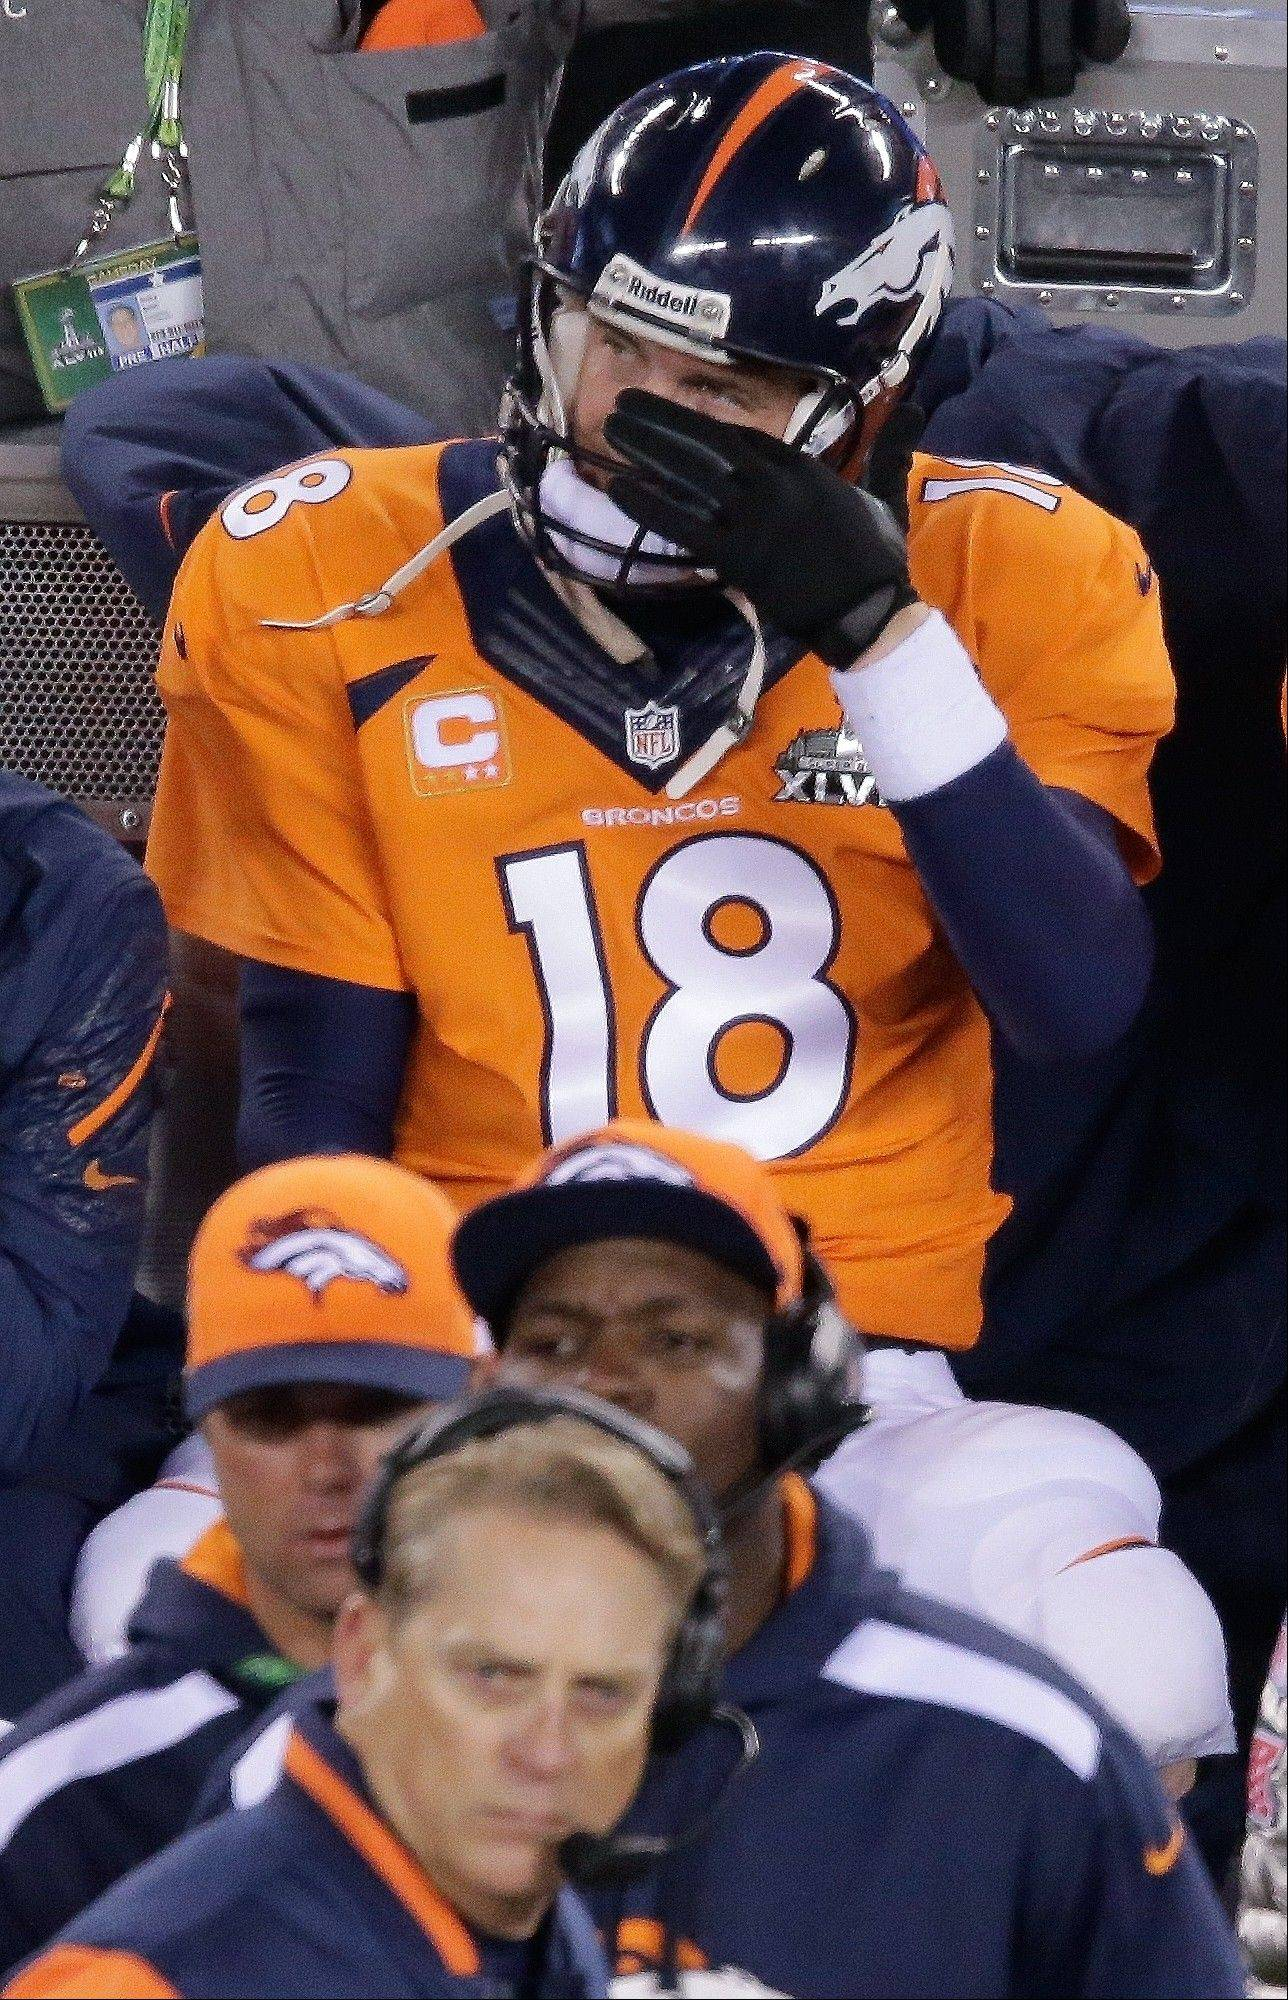 Denver Broncos' Peyton Manning watches play against the Seattle Seahawks during the second half of the NFL Super Bowl XLVIII football game Sunday, Feb. 2, 2014, in East Rutherford, N.J.